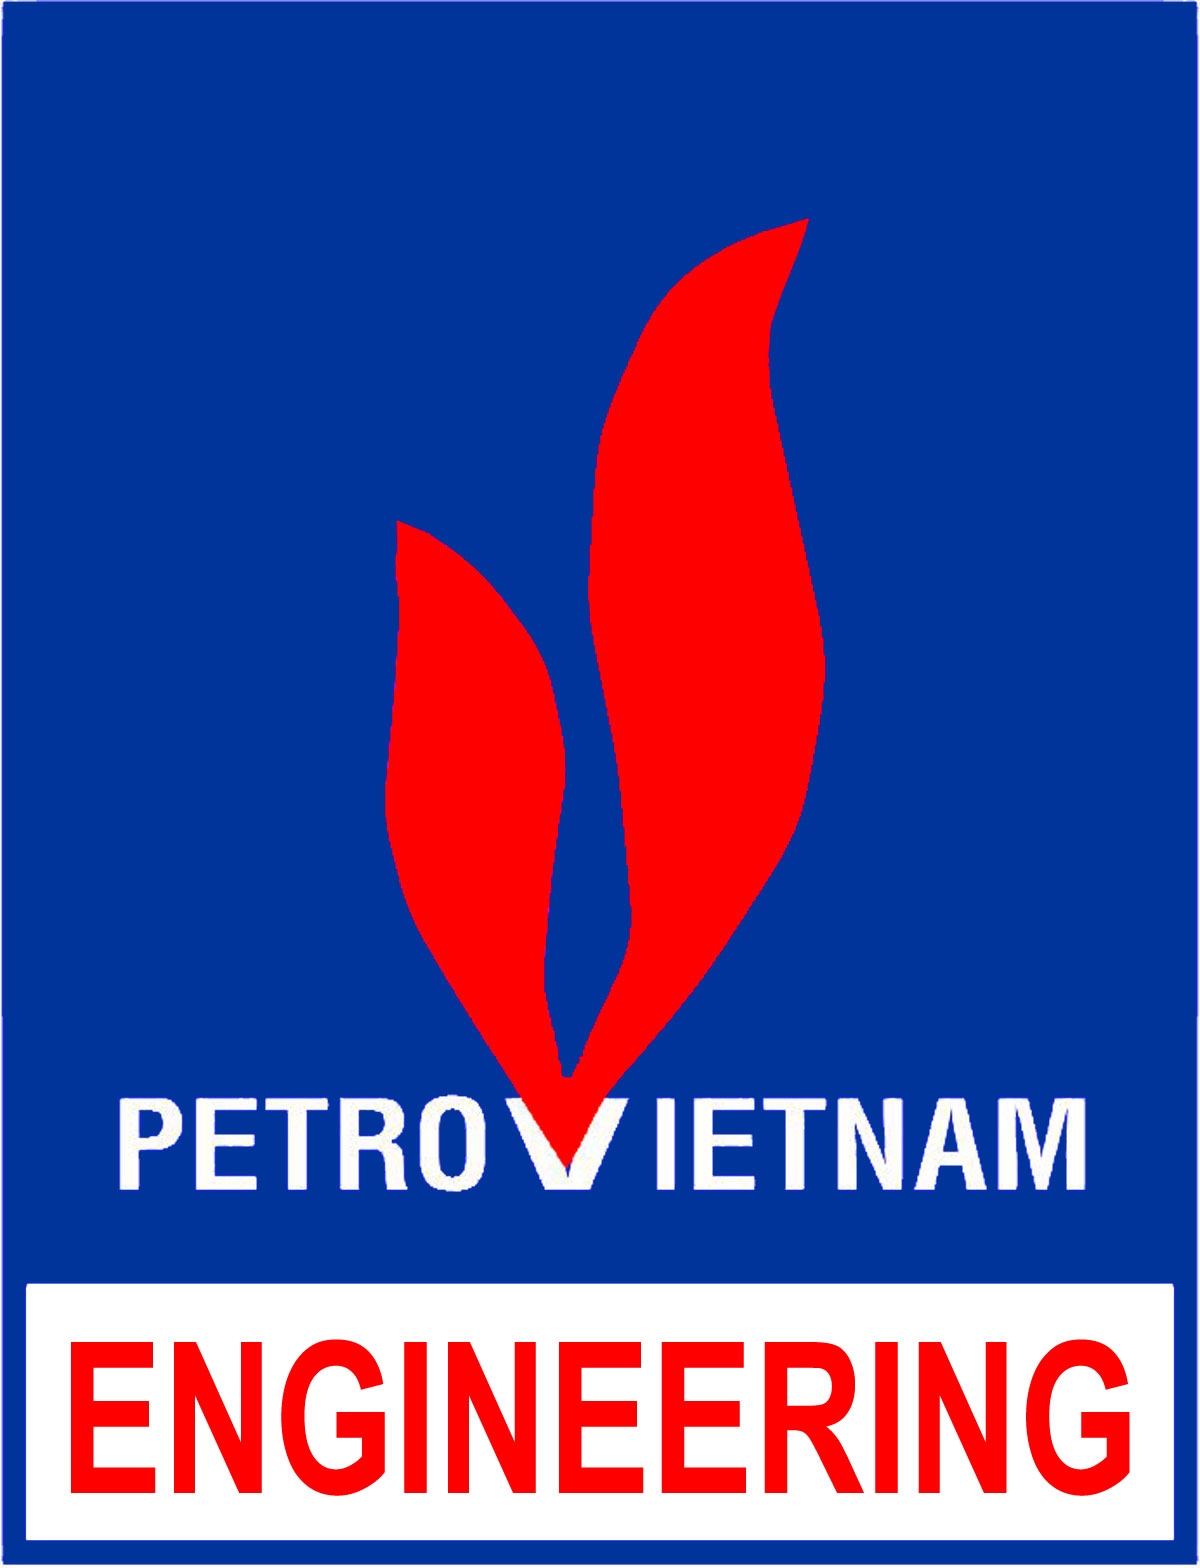 Pve   Petrovietnam Engineering Consultancy Jsc   Pv Engineering   Vietstockfinance - Petrovietnam, Transparent background PNG HD thumbnail